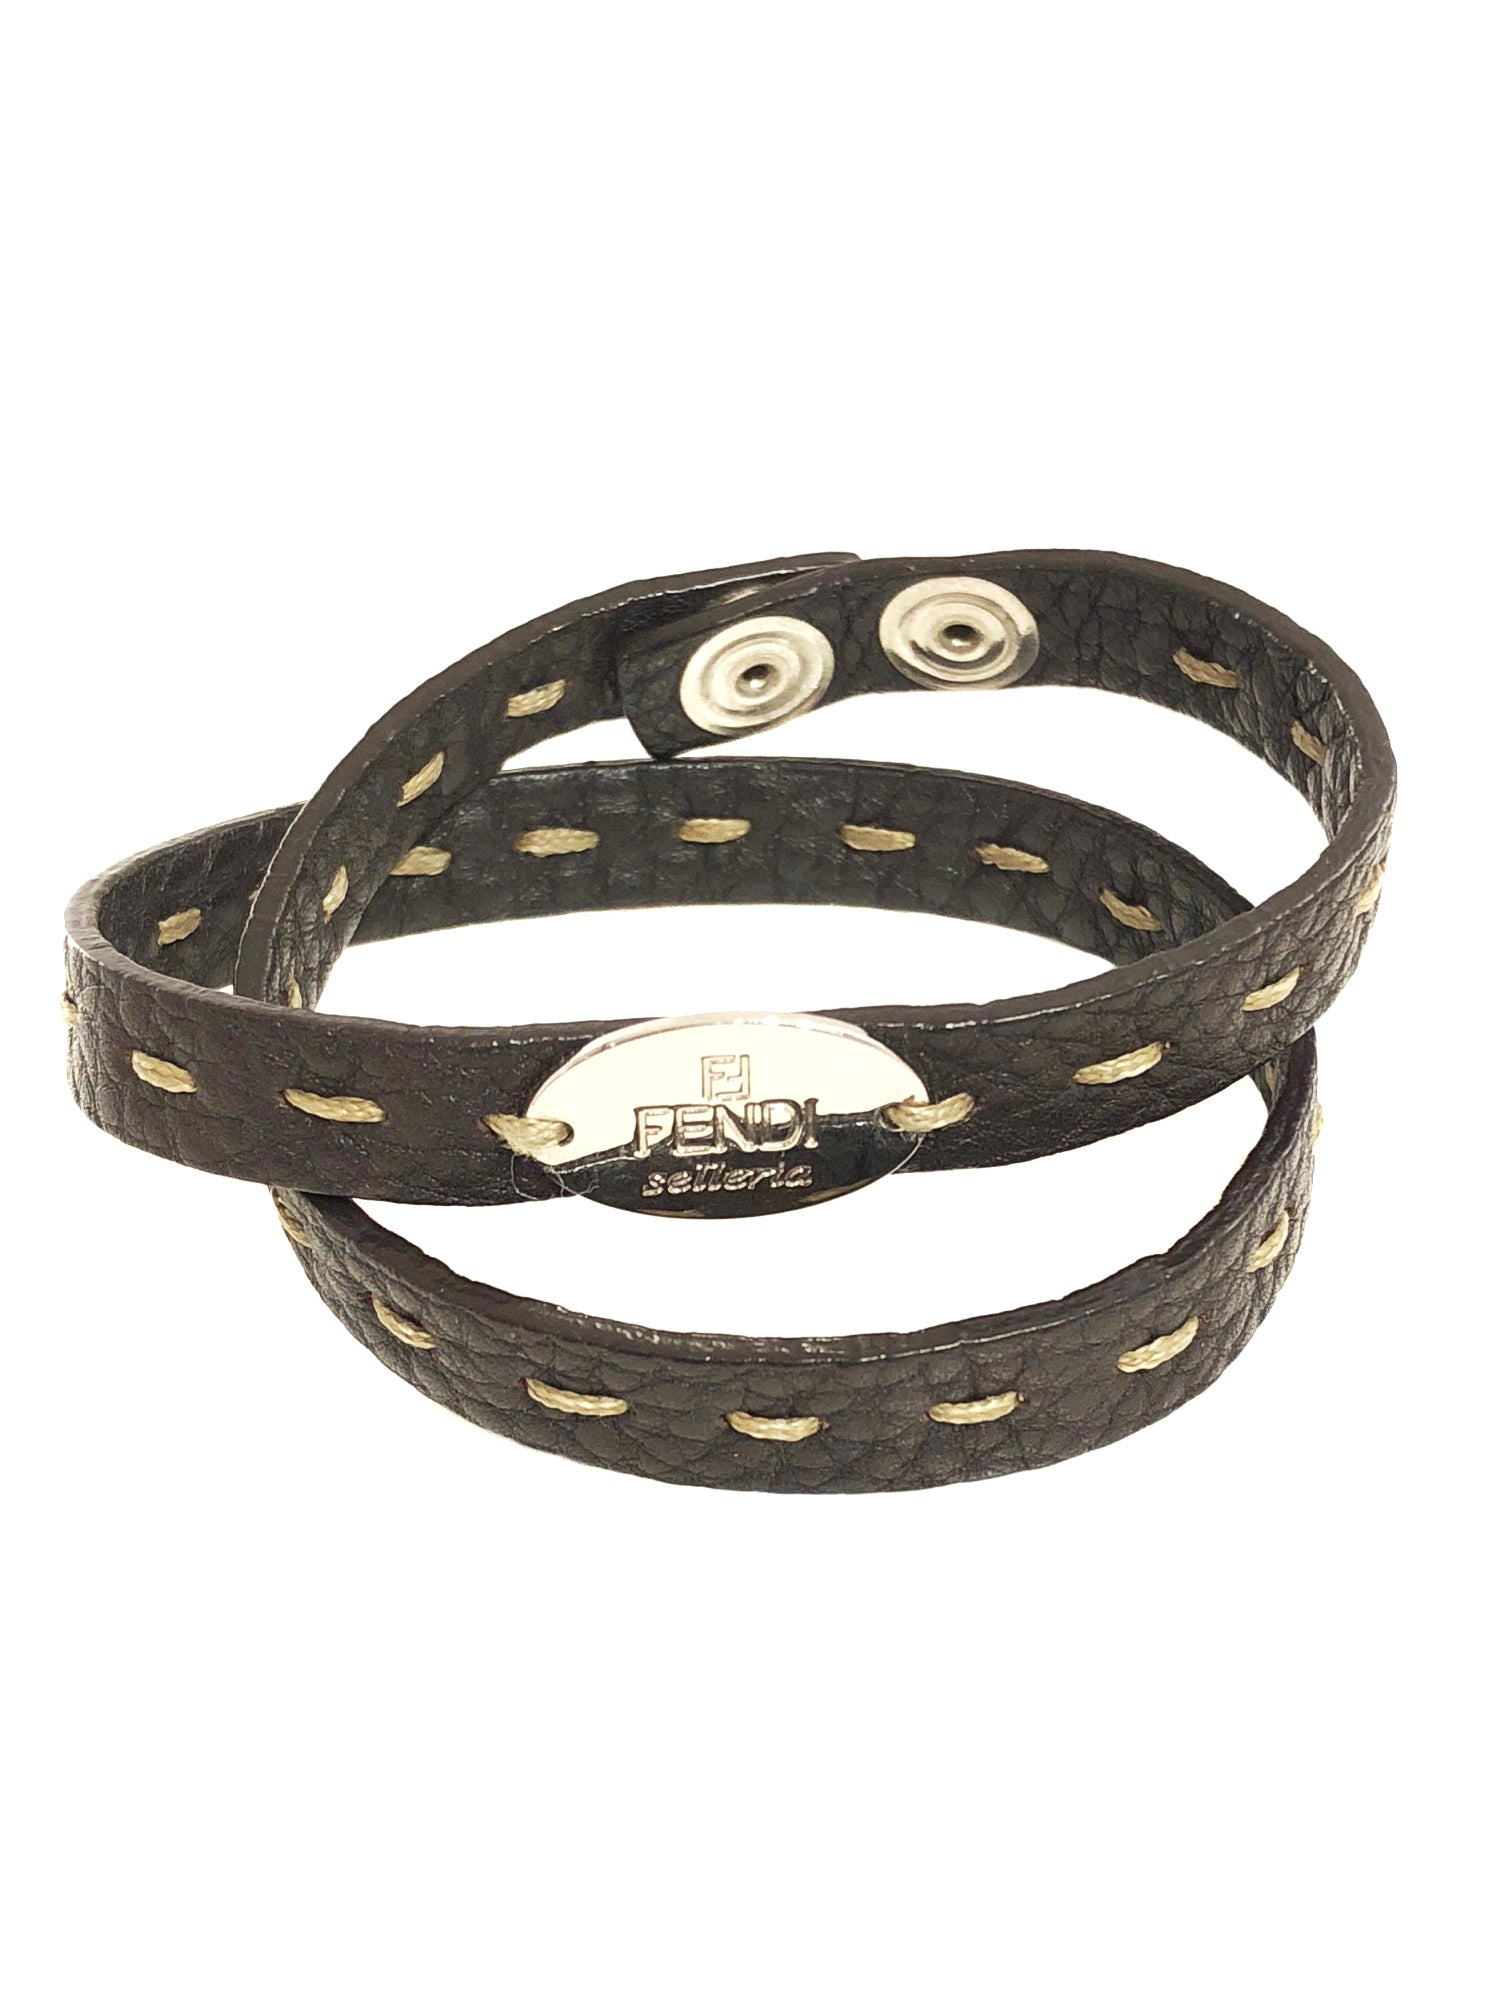 Fendi Leather Bracelet - Authentic PreOwned